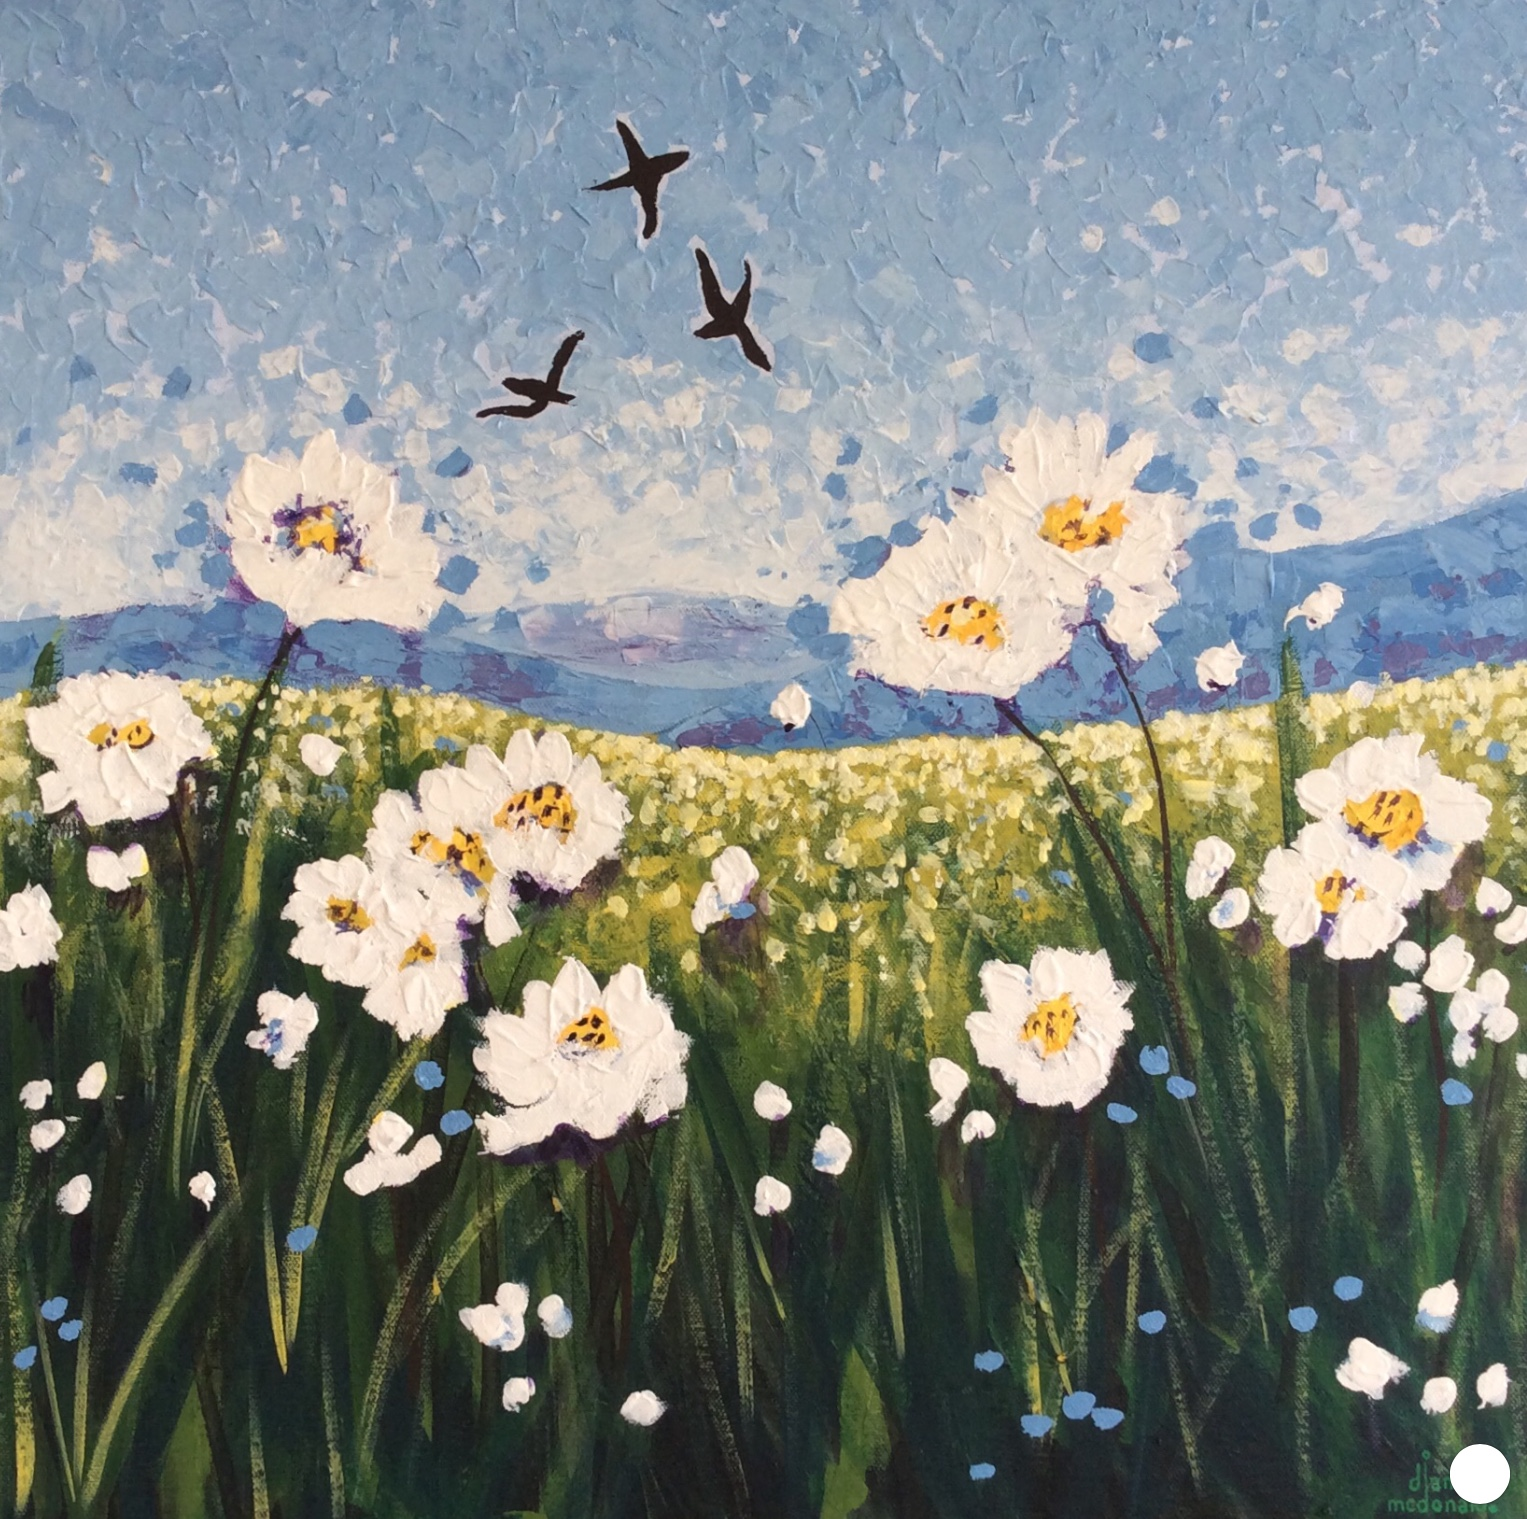 Daisies in the Fields 2